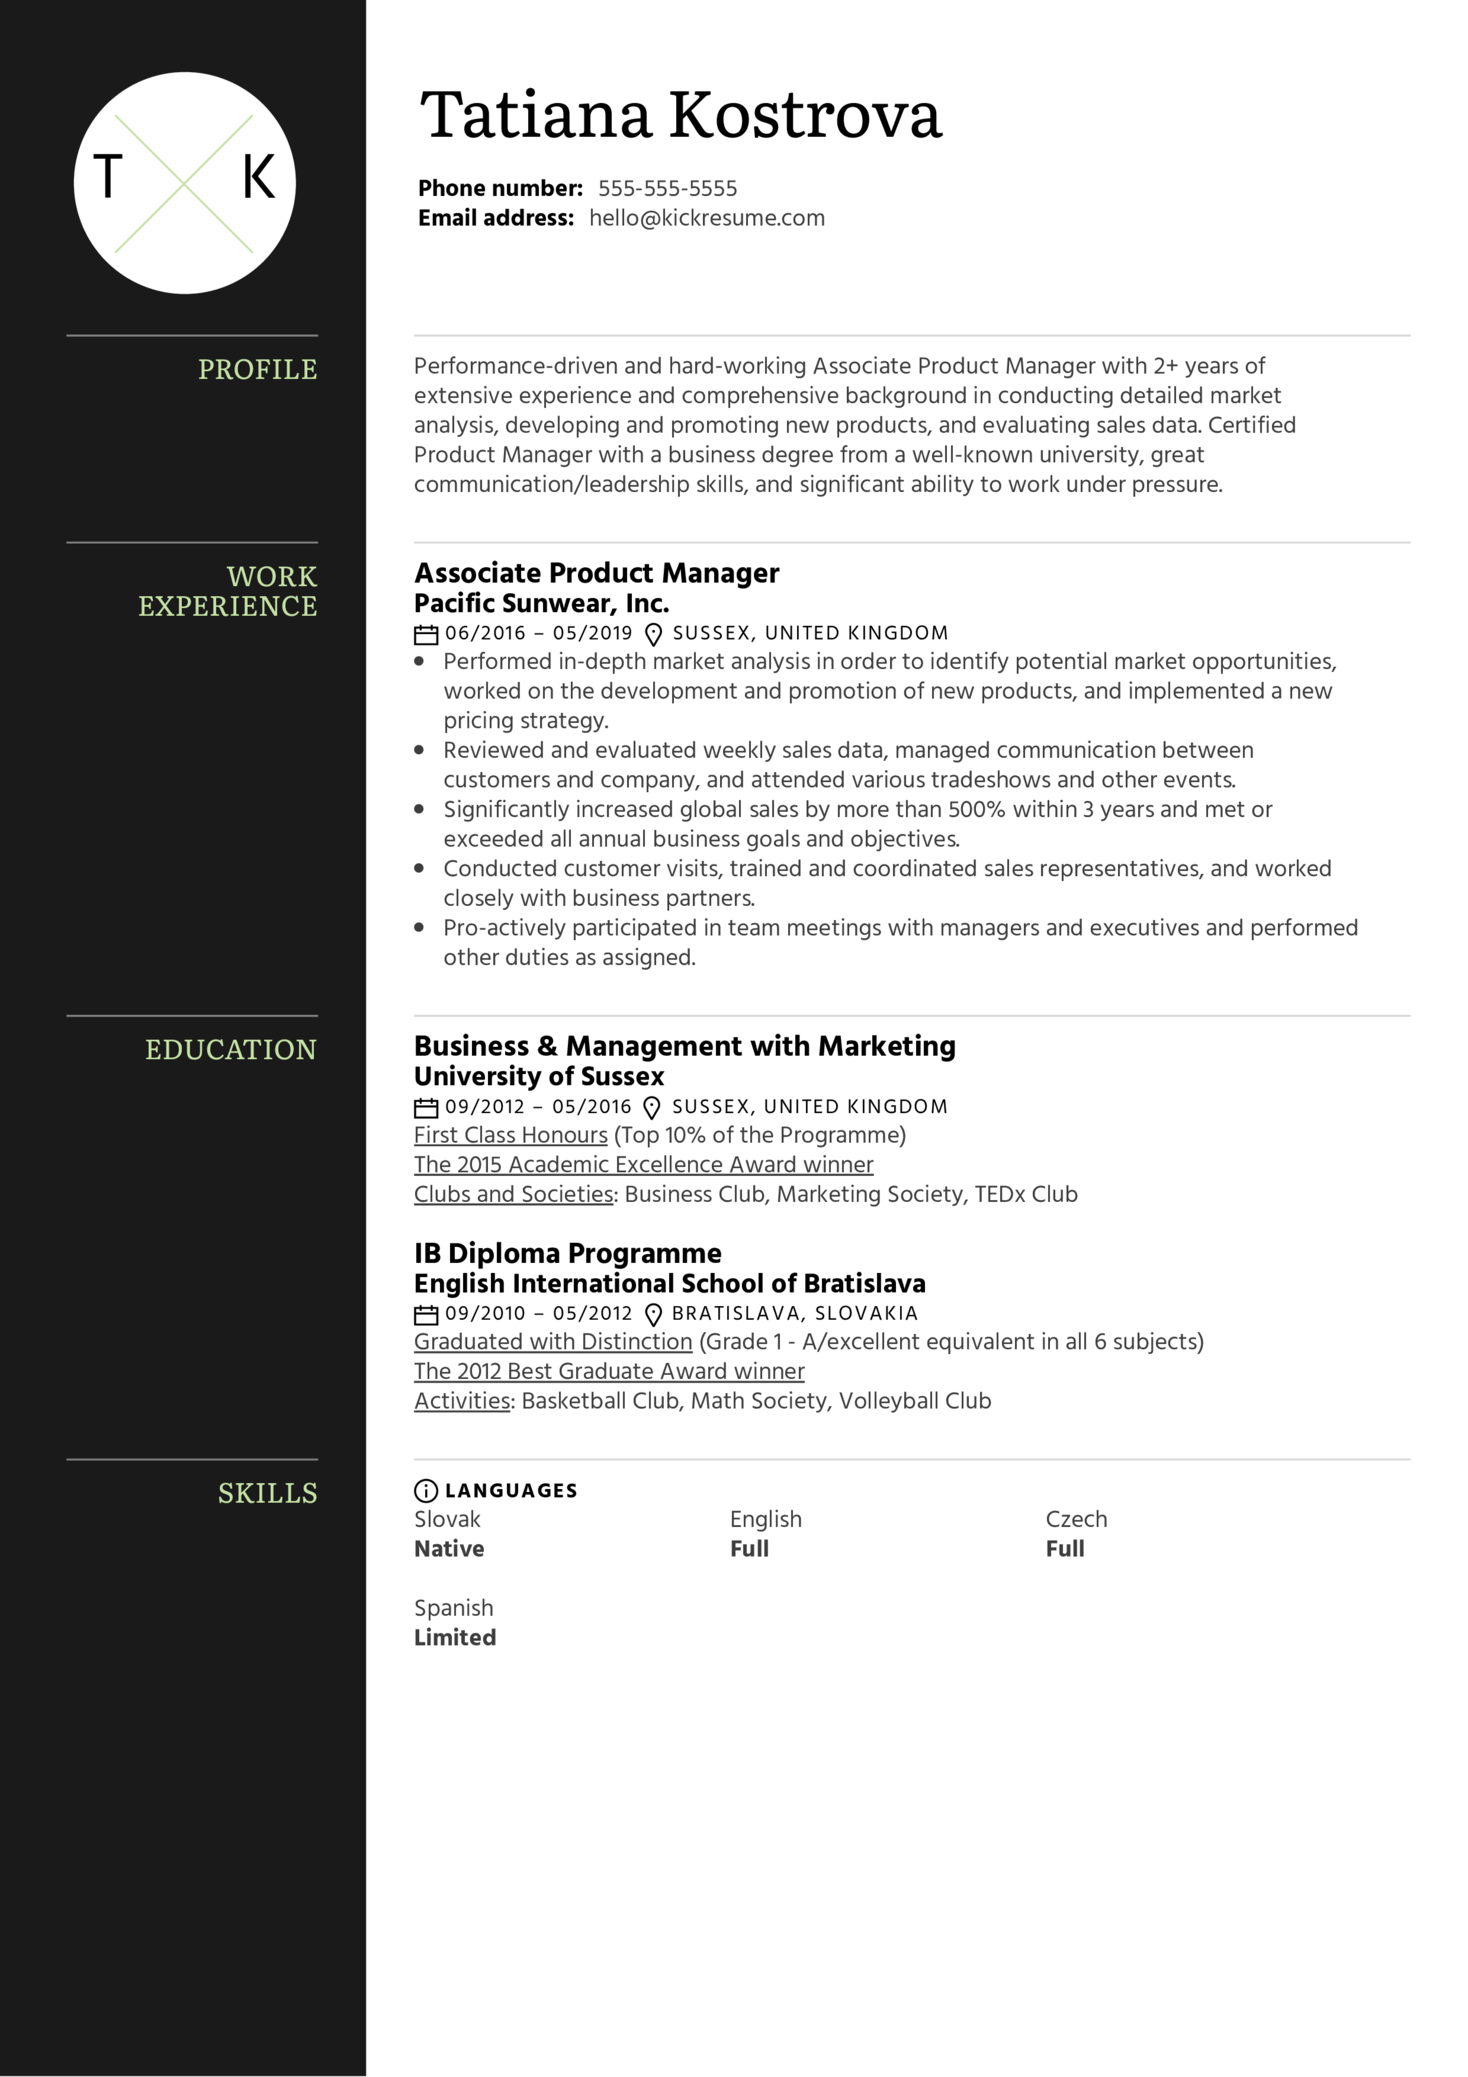 Associate Product Manager Resume Example (Part 1)